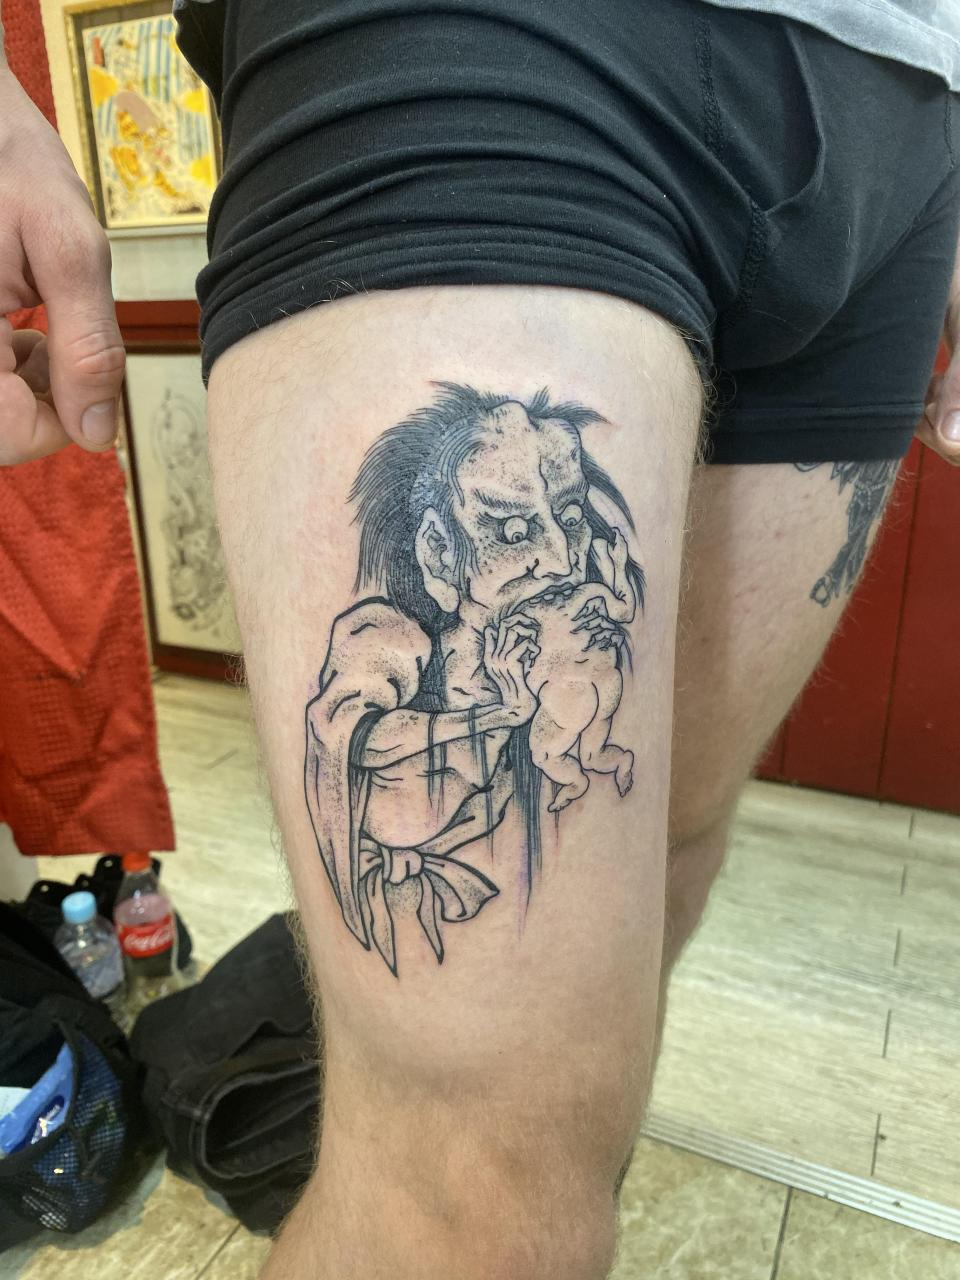 Saturn Devouring His Son by Jan Willem (guest spot) at Three Tides Tattoo in Osaka, Japan